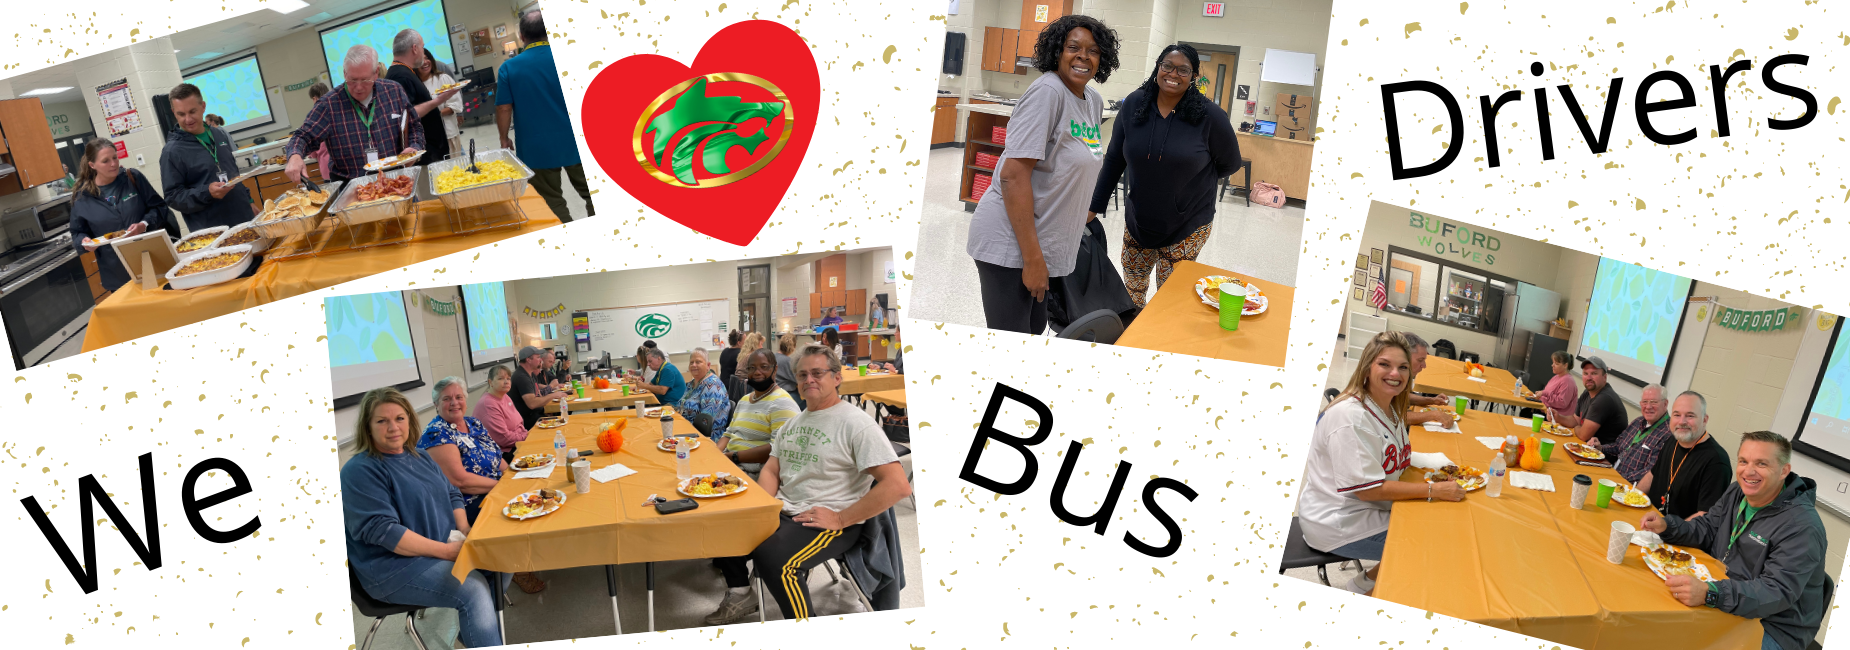 We love our Bus Drivers